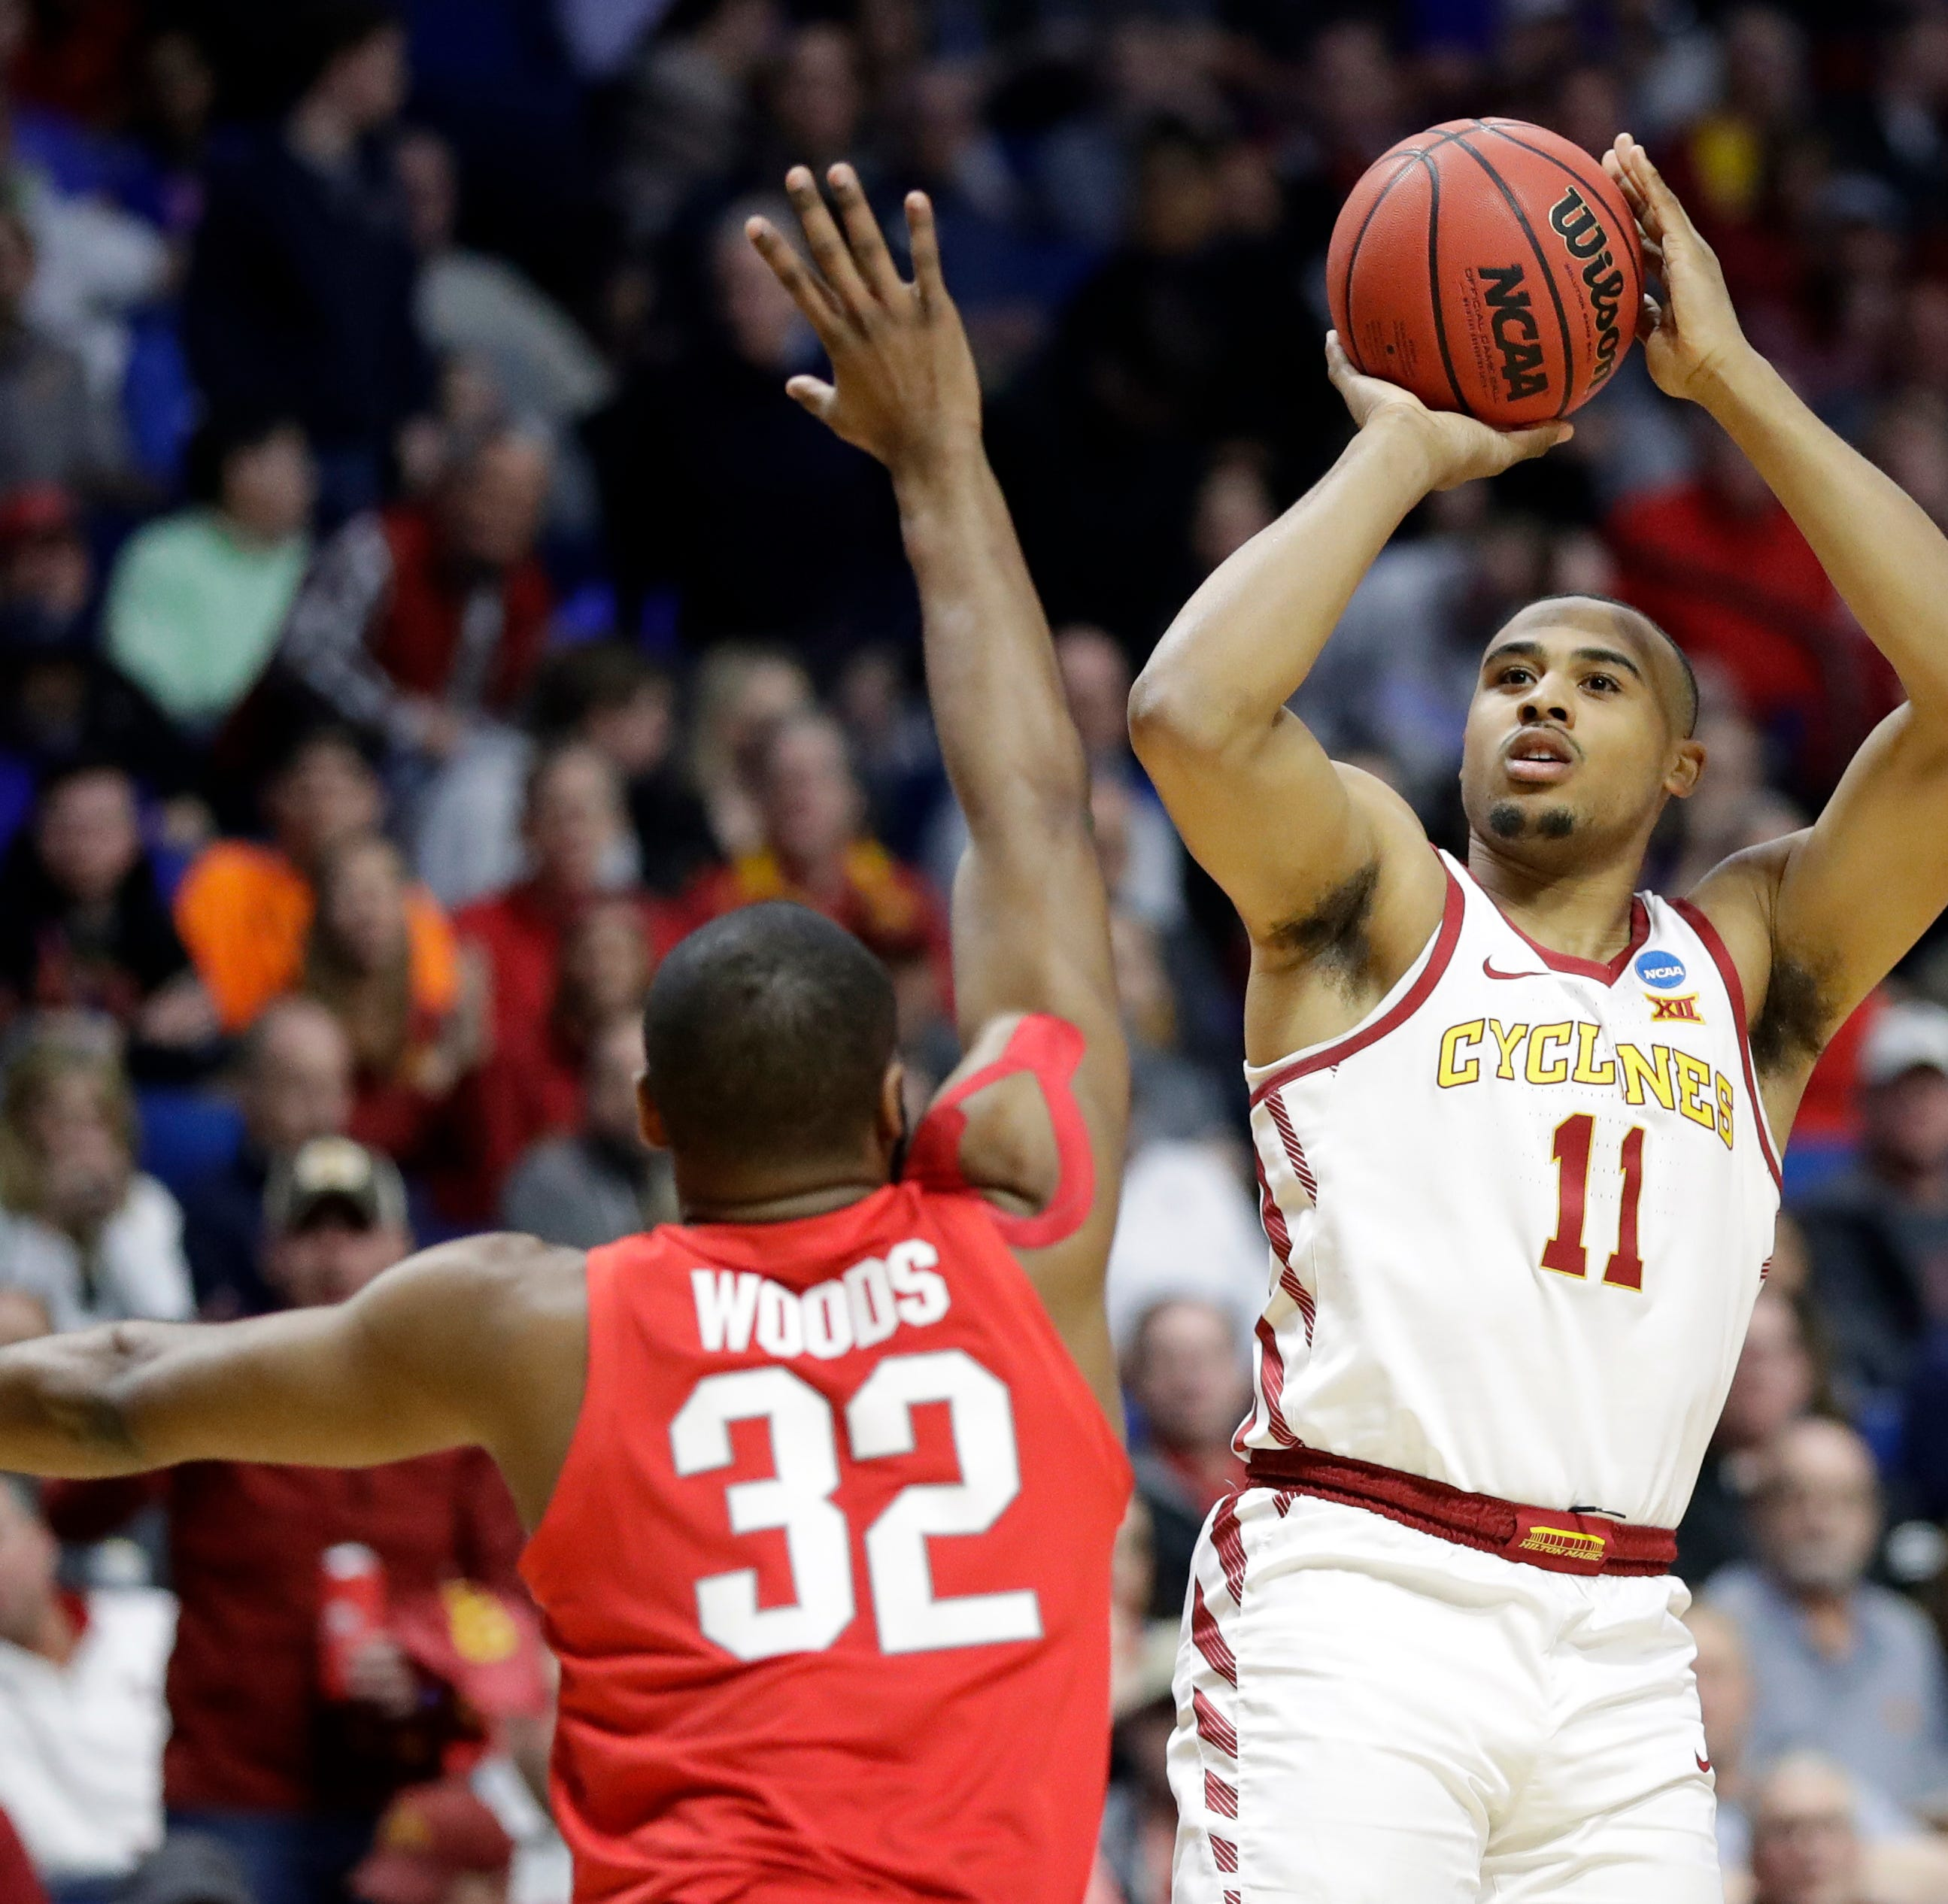 Peterson: Is this the Iowa State end for talented freshman Talen Horton-Tucker?